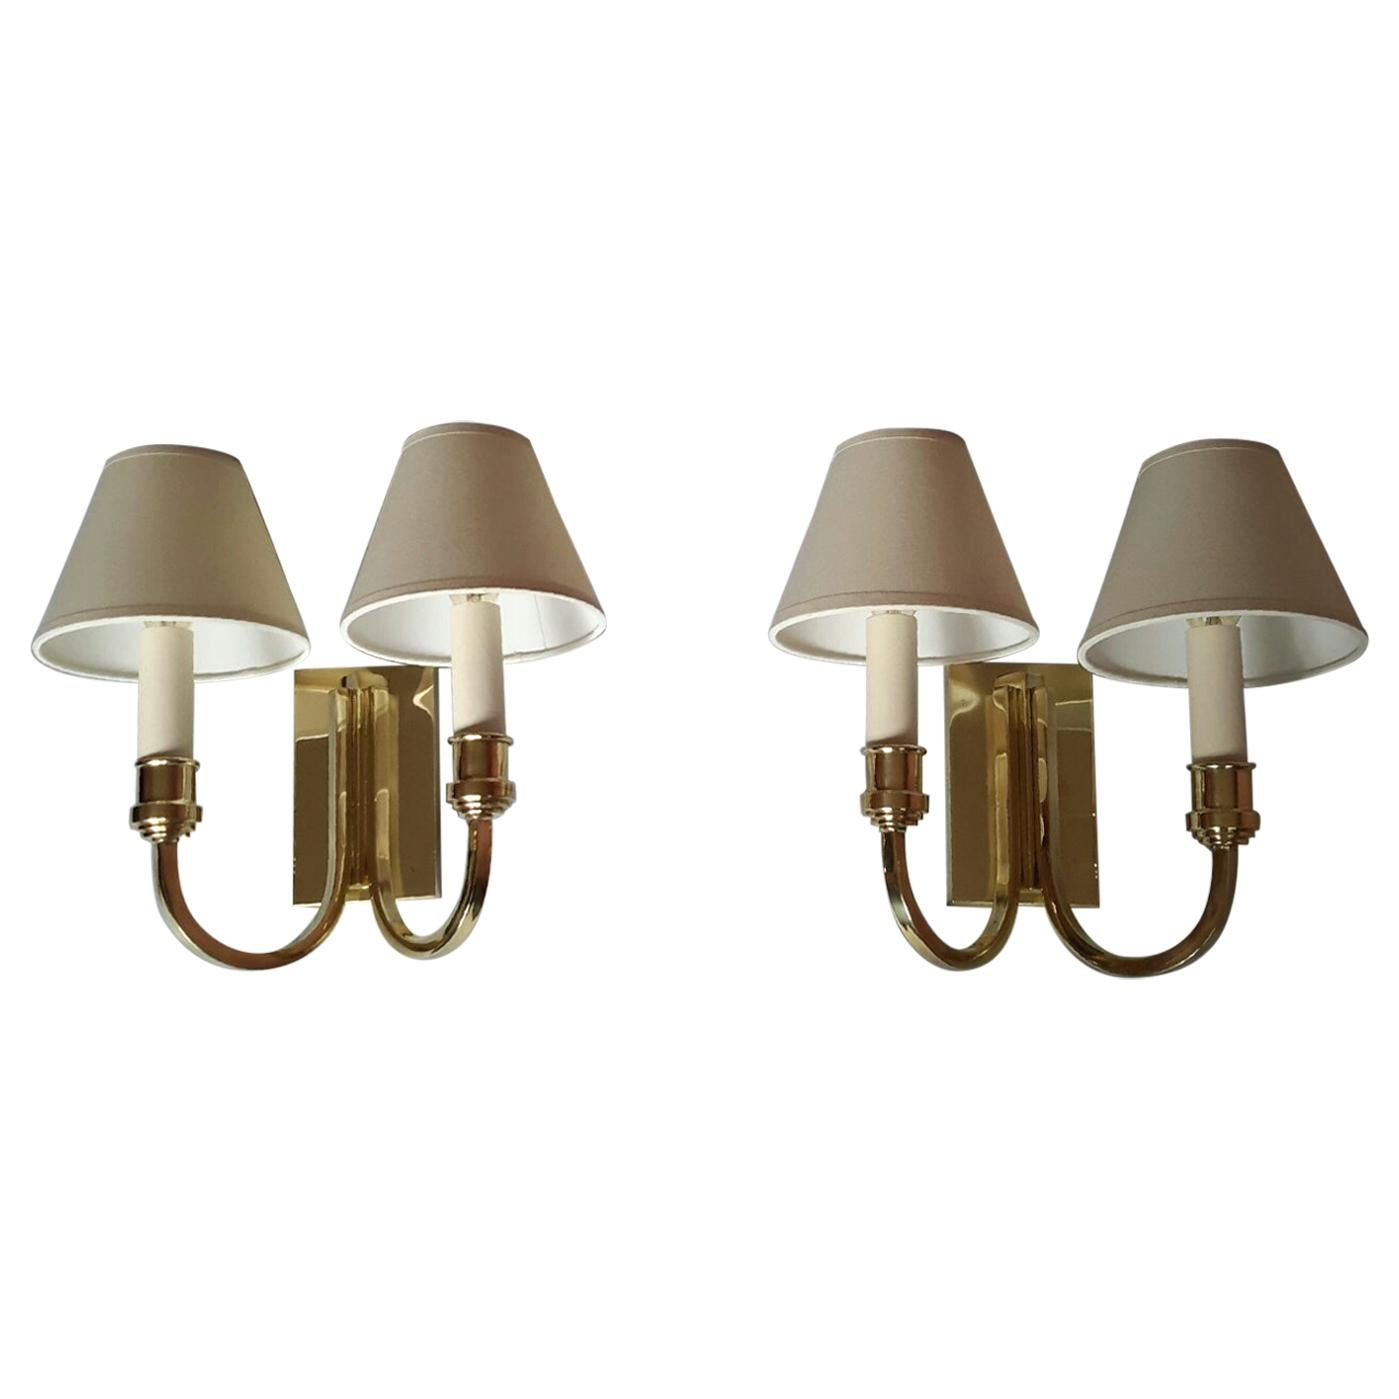 Genet Michon Neoclassical Pair of Gilt Bronze Wall Sconces, France, 1950